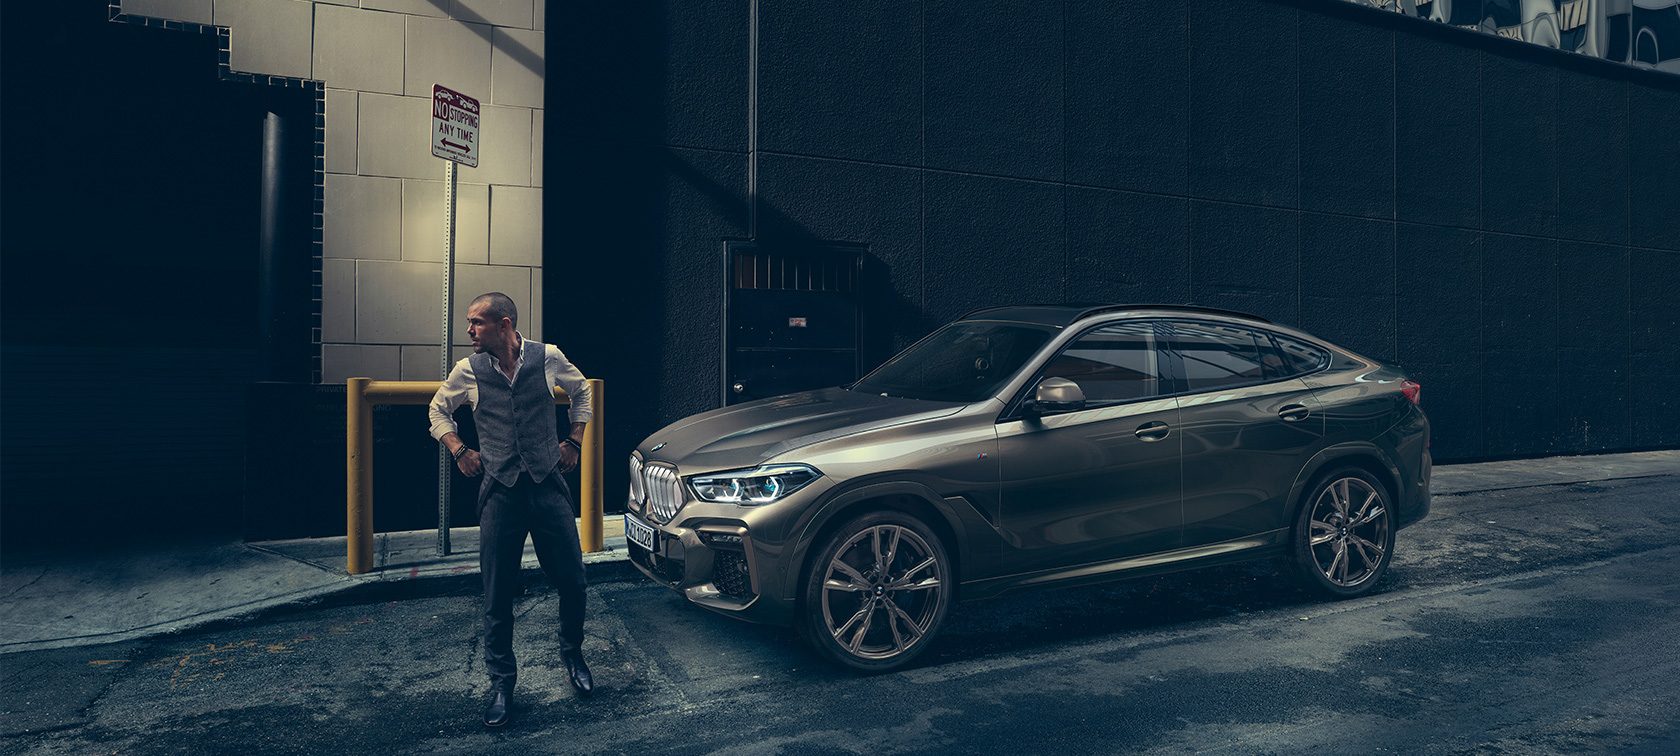 BMW X6, vista laterale in ambiente urbano.